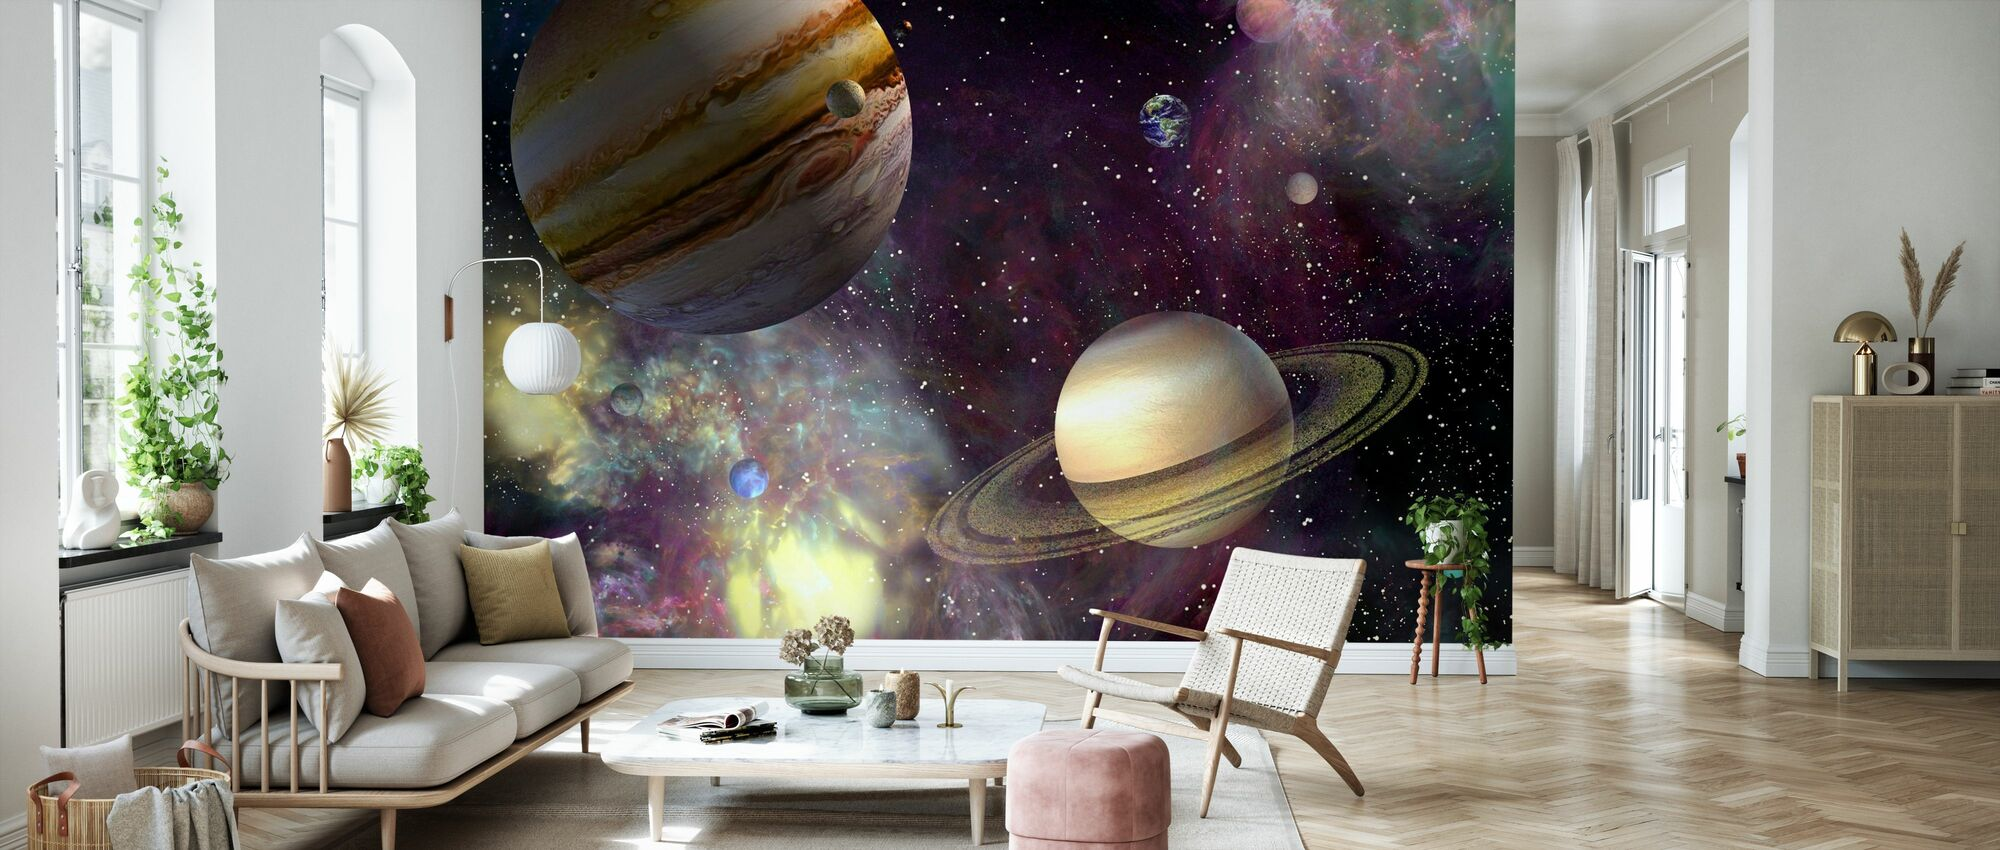 Our Solar System - Wallpaper - Living Room